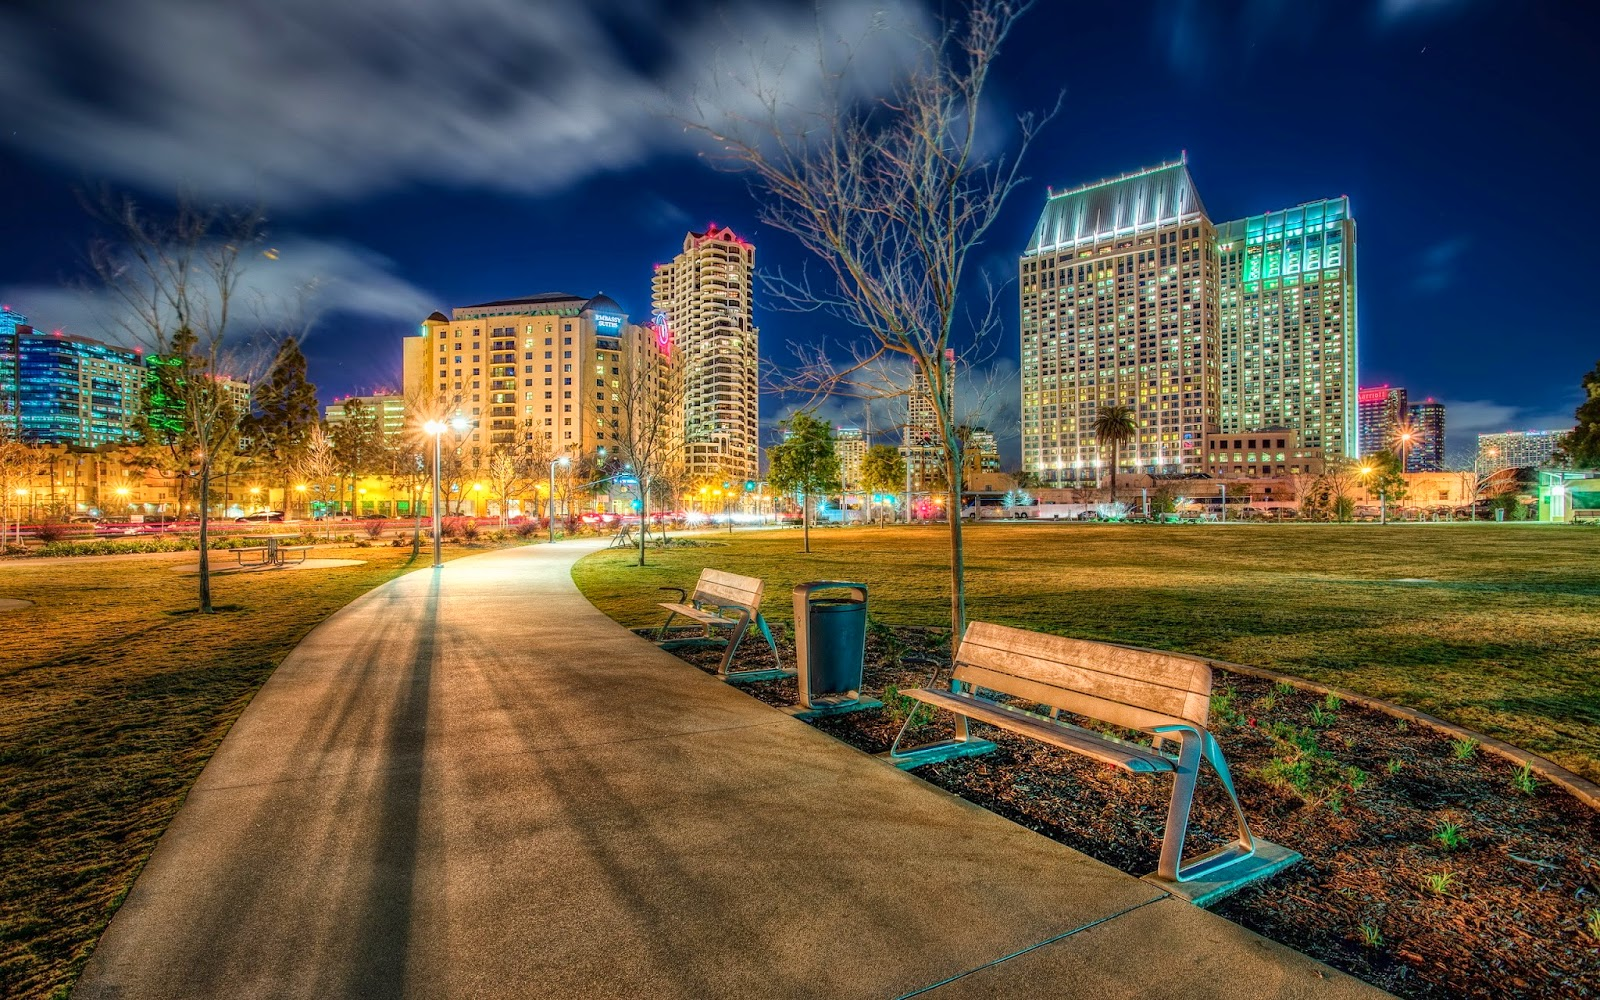 Ruocco Wallpaper San Diego California   Park wallpaper at San Diego 1600x1000